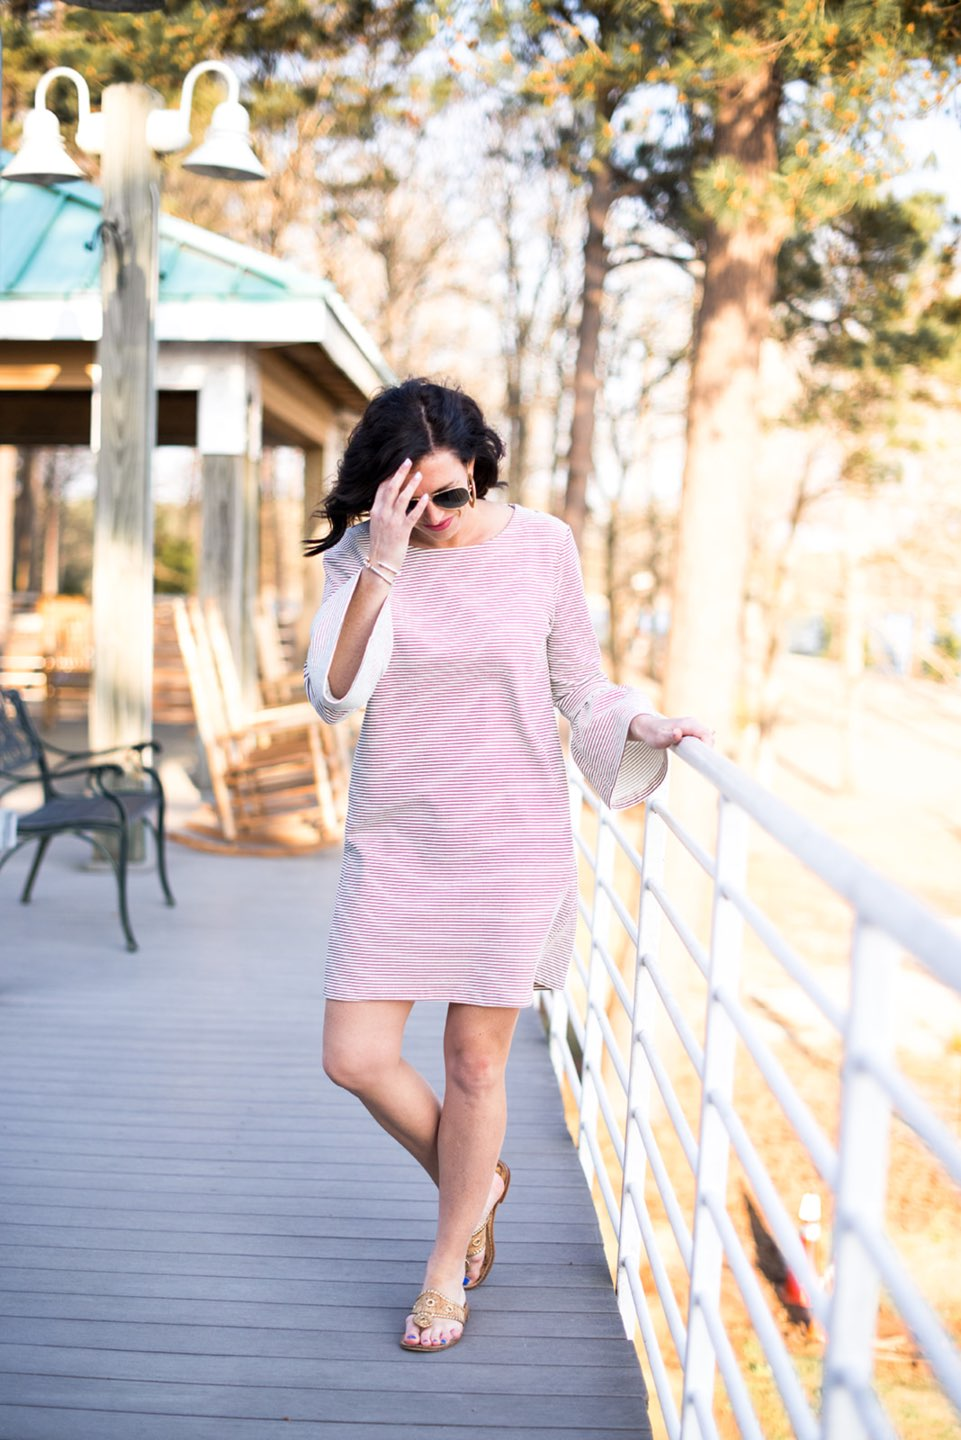 Casual Spring Outfits featured by top US fashion blog I'm Fixin' To; Image of a woman wearing J. Crew Factory Stripe Dress, David Yurman Bangle, Sheila Fajl Hoops, Ray-Ban Polarized Aviators and Jack Rogers Sandals